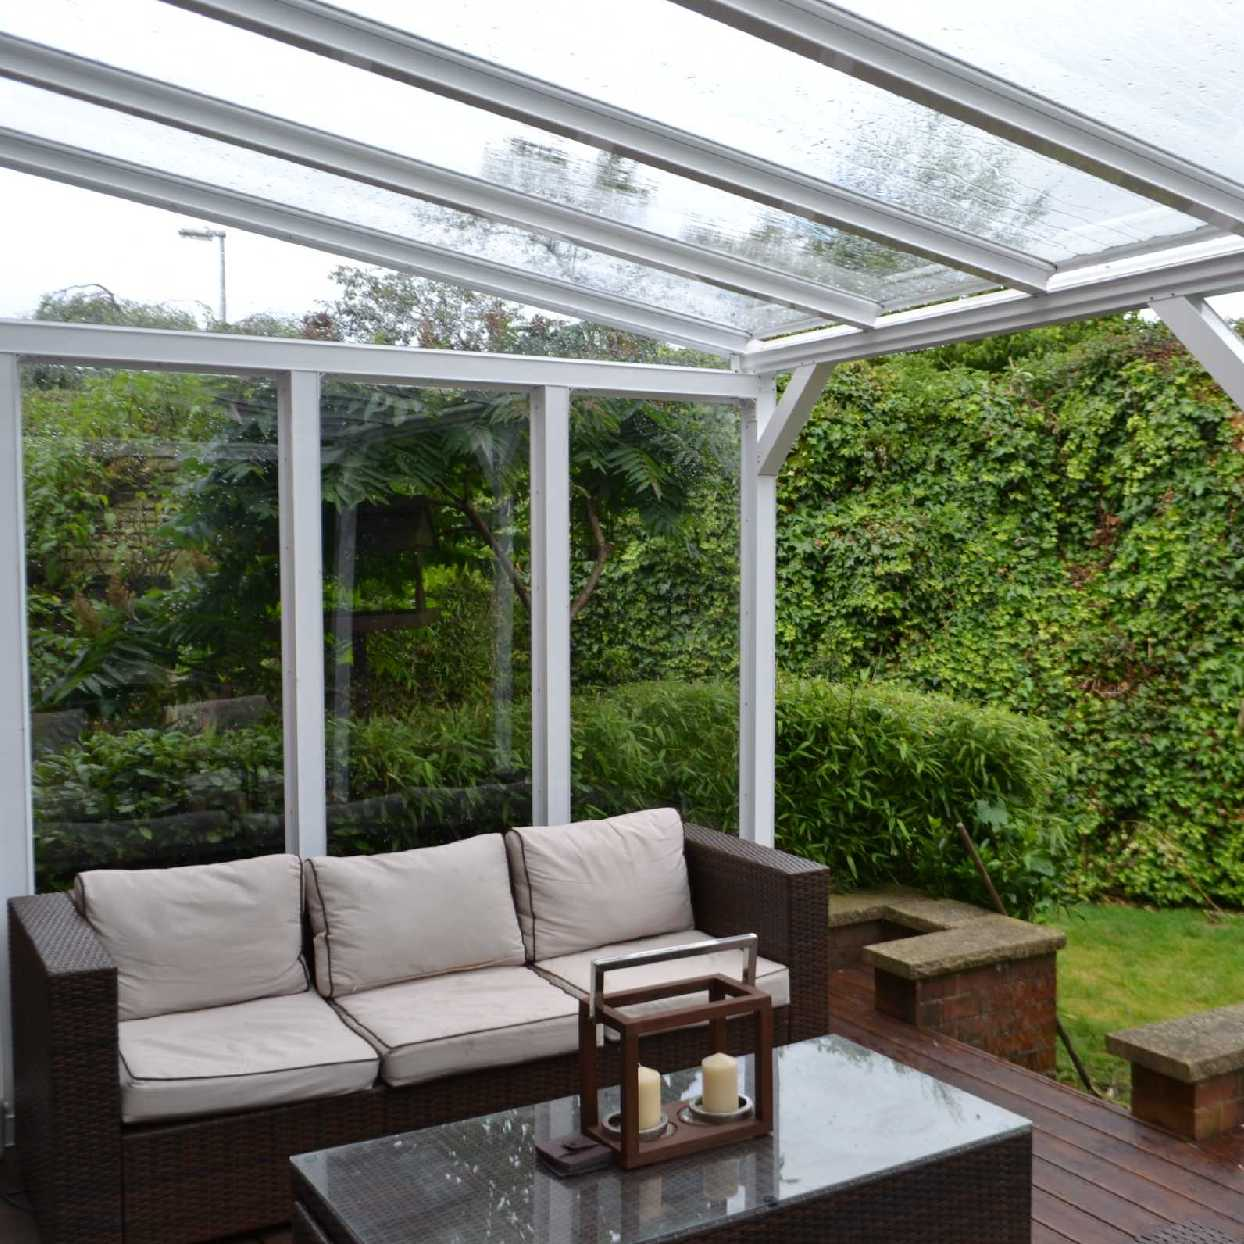 Great selection of Omega Smart White Lean-To Canopy with 16mm Polycarbonate Glazing - 12.0m (W) x 2.5m (P), (5) Supporting Posts